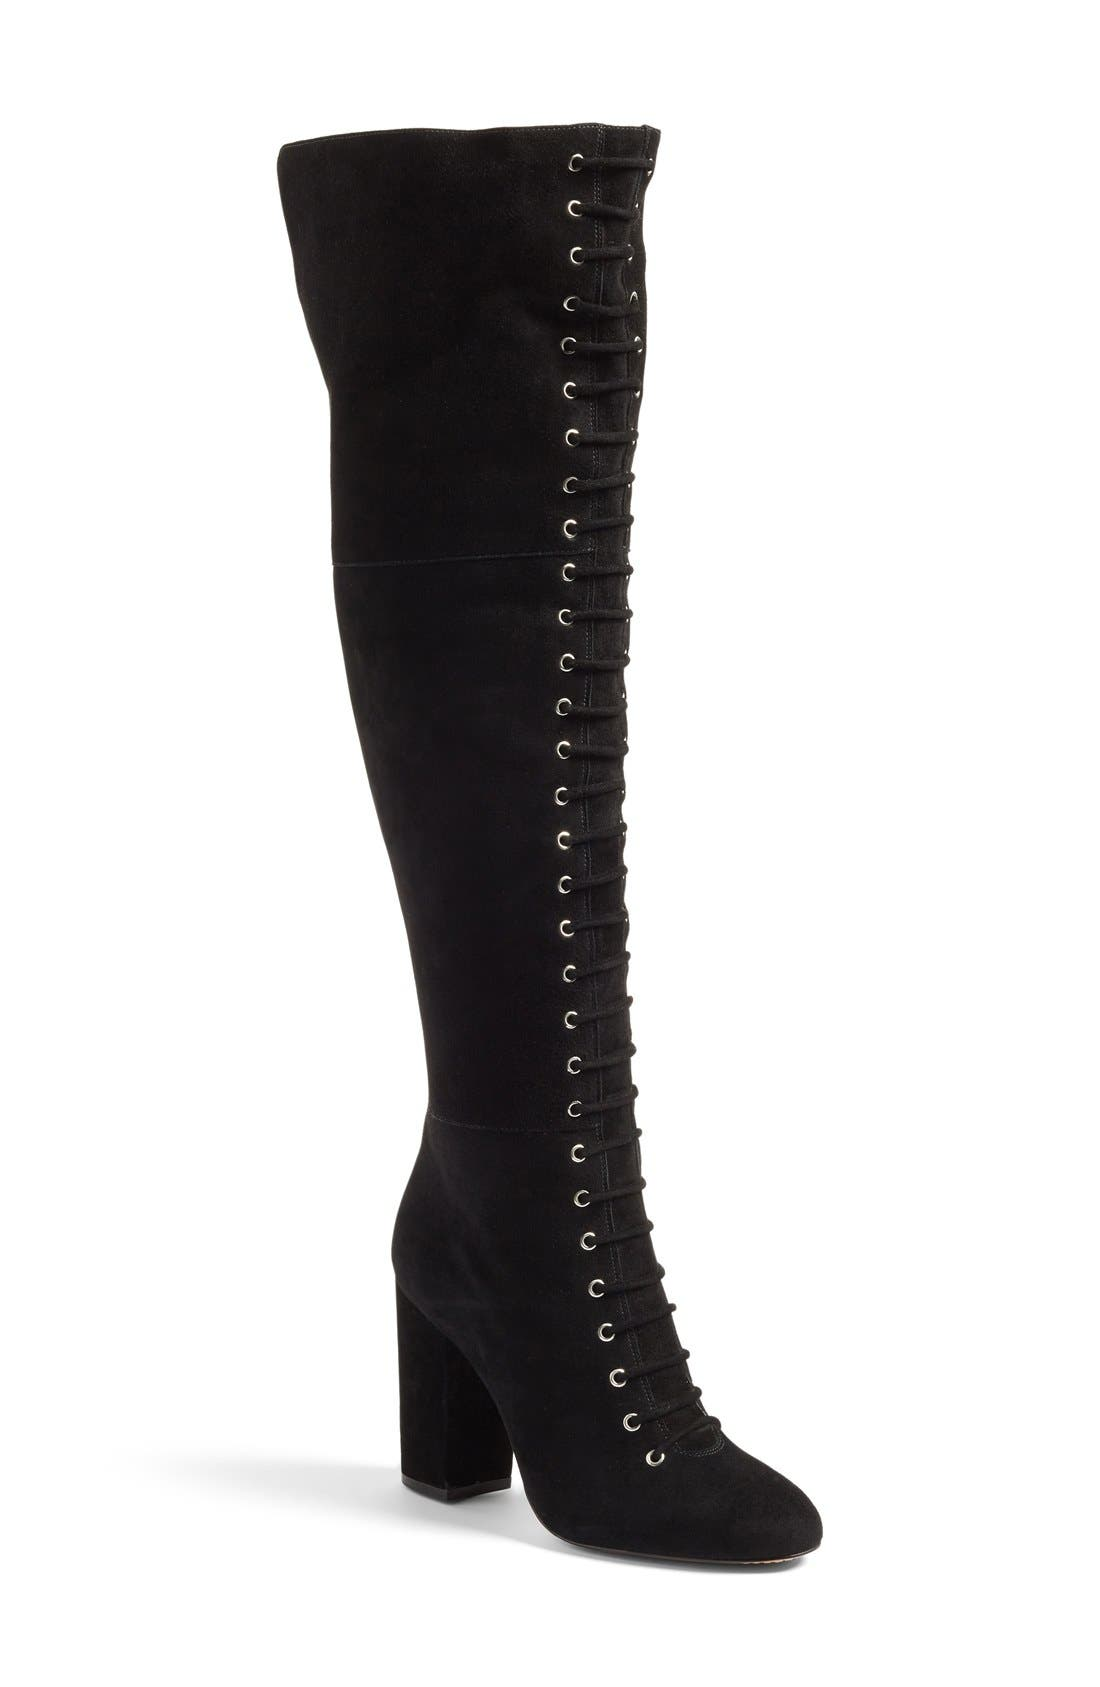 Alternate Image 1 Selected - Vince Camuto 'Felana' Over the Knee Boot (Women)